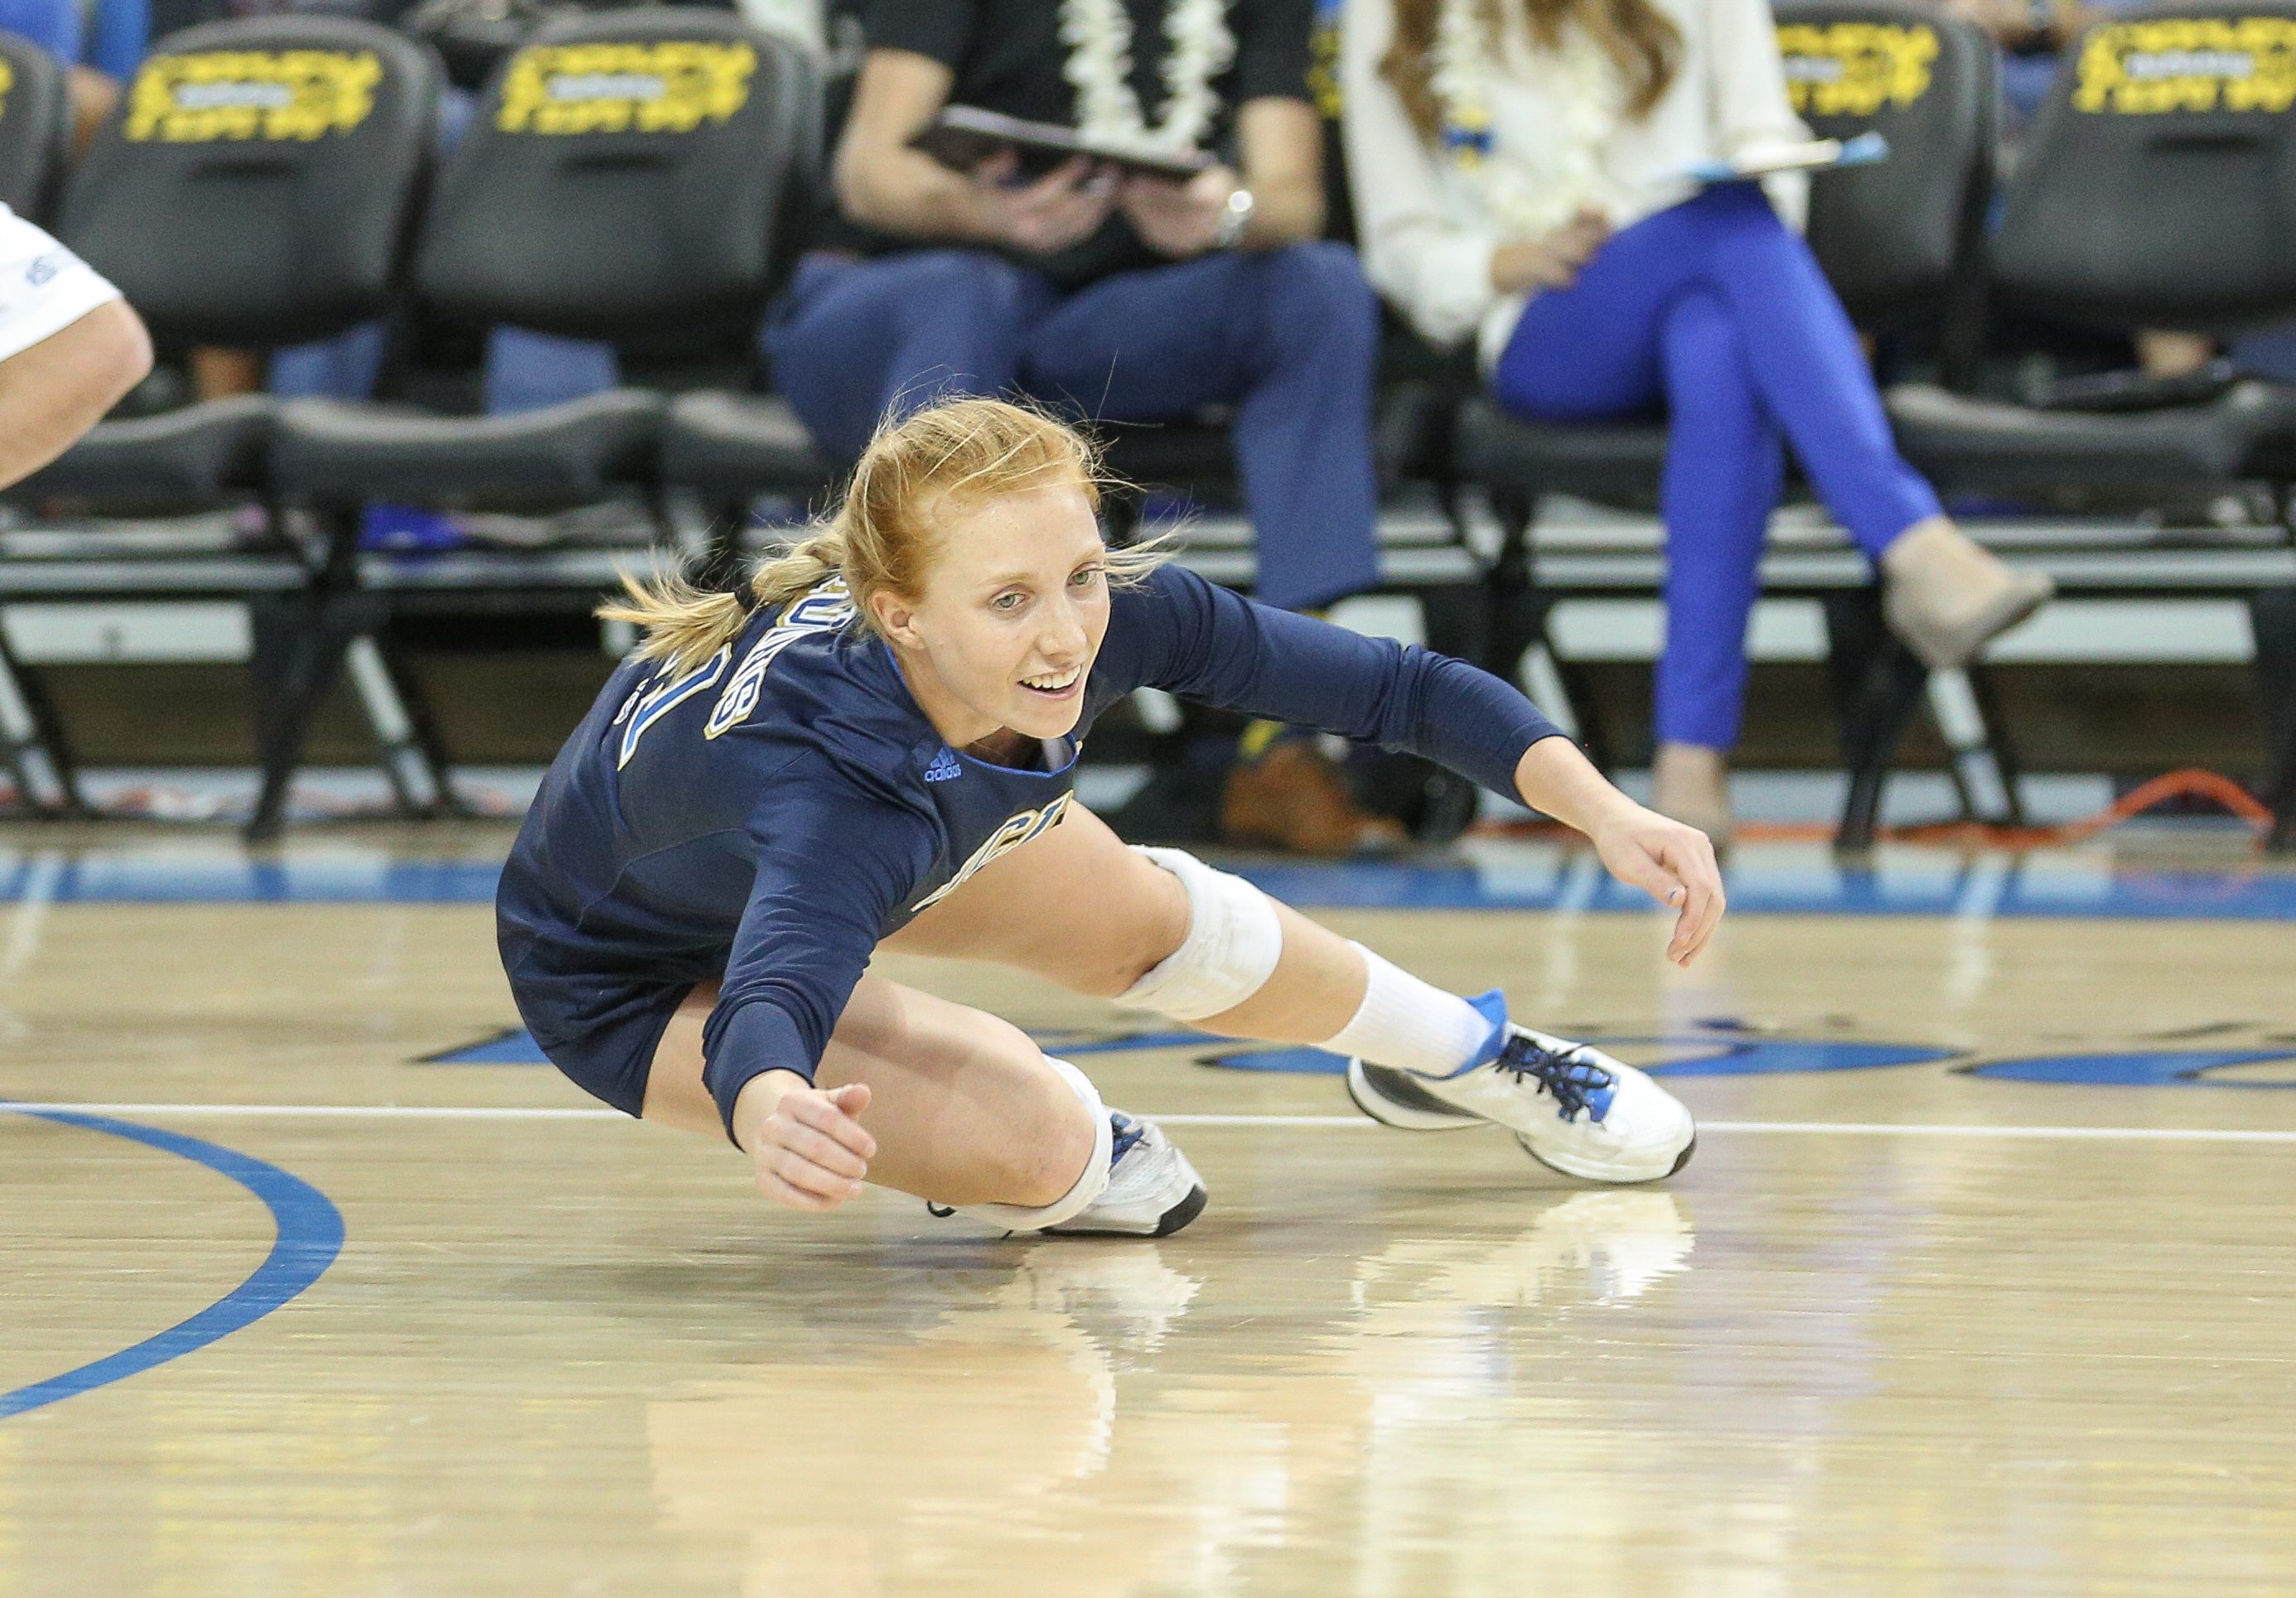 Taylor Formico goes for a dig against Stanford